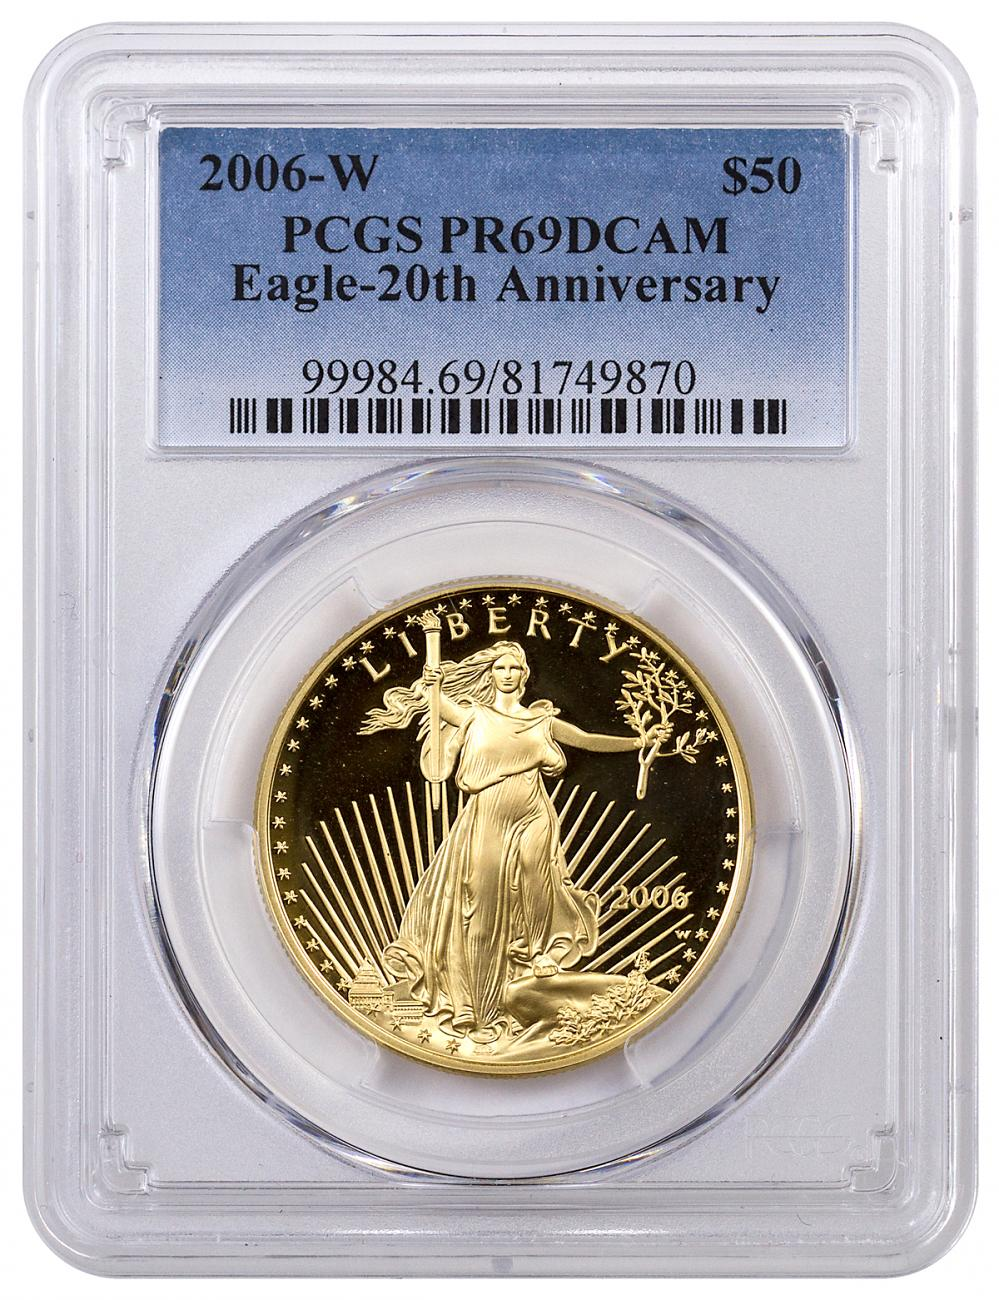 2006-W $50 1 oz. Proof American Gold Eagle - From 20th Anniversary Set - PCGS PR69 DCAM